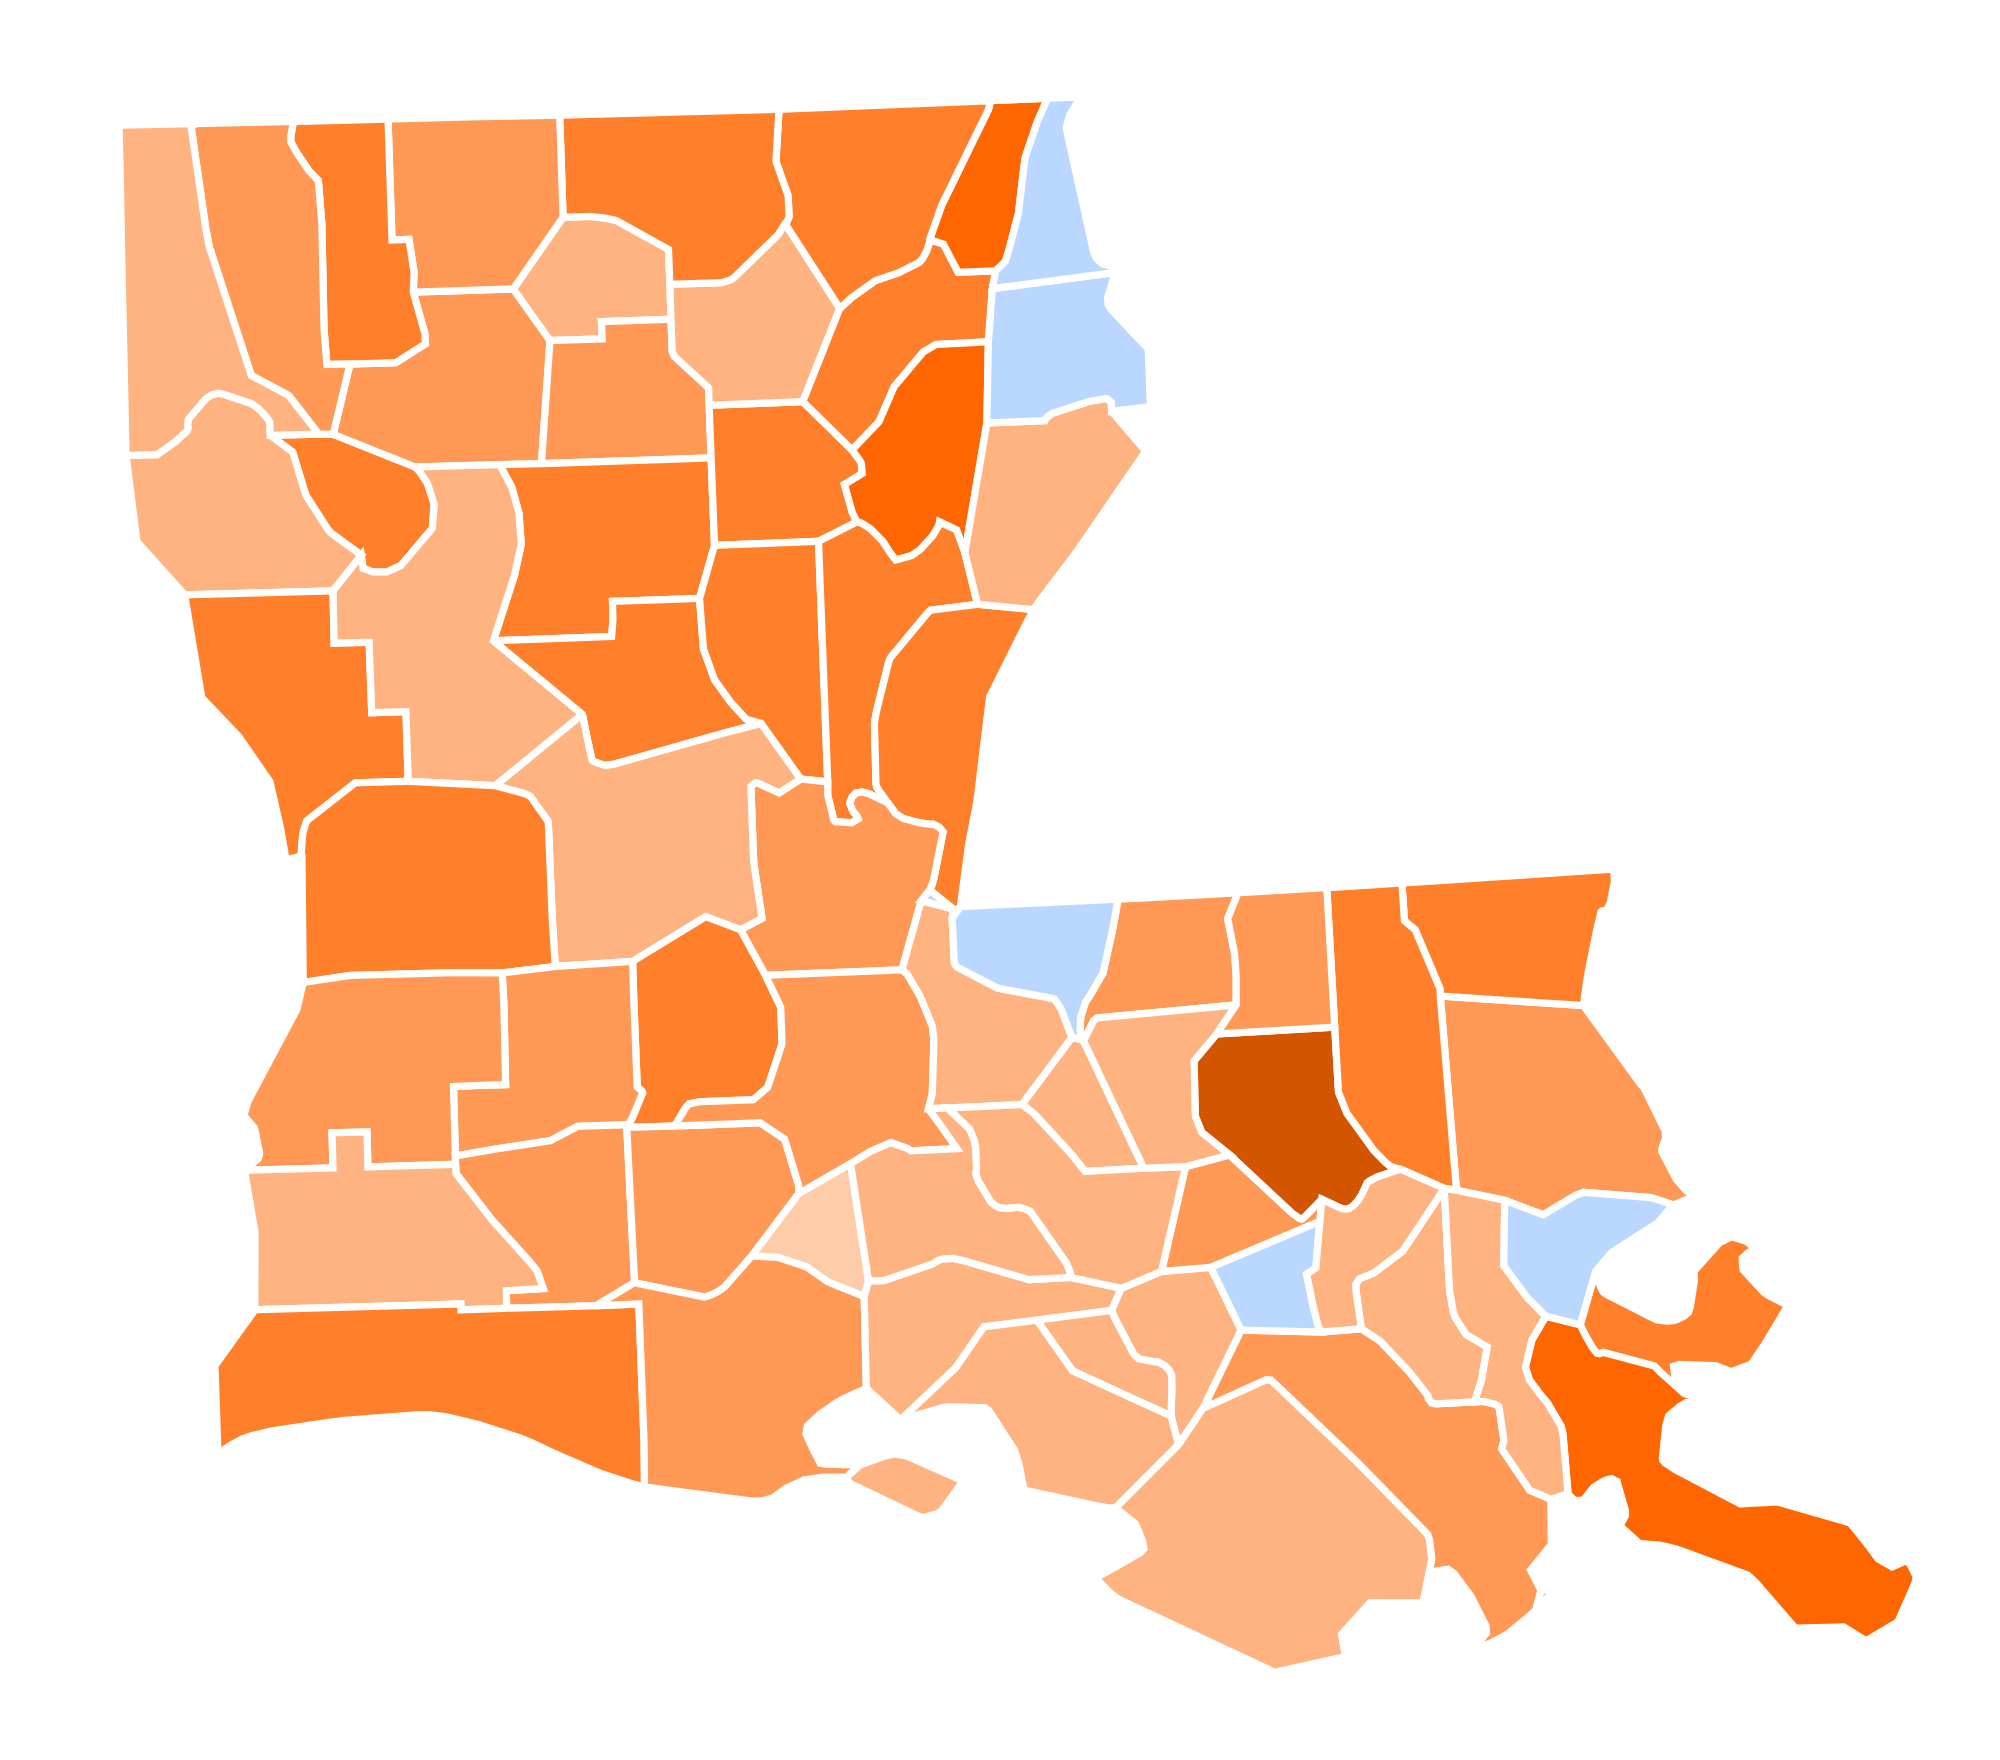 Louisiana svg. File presidential election results